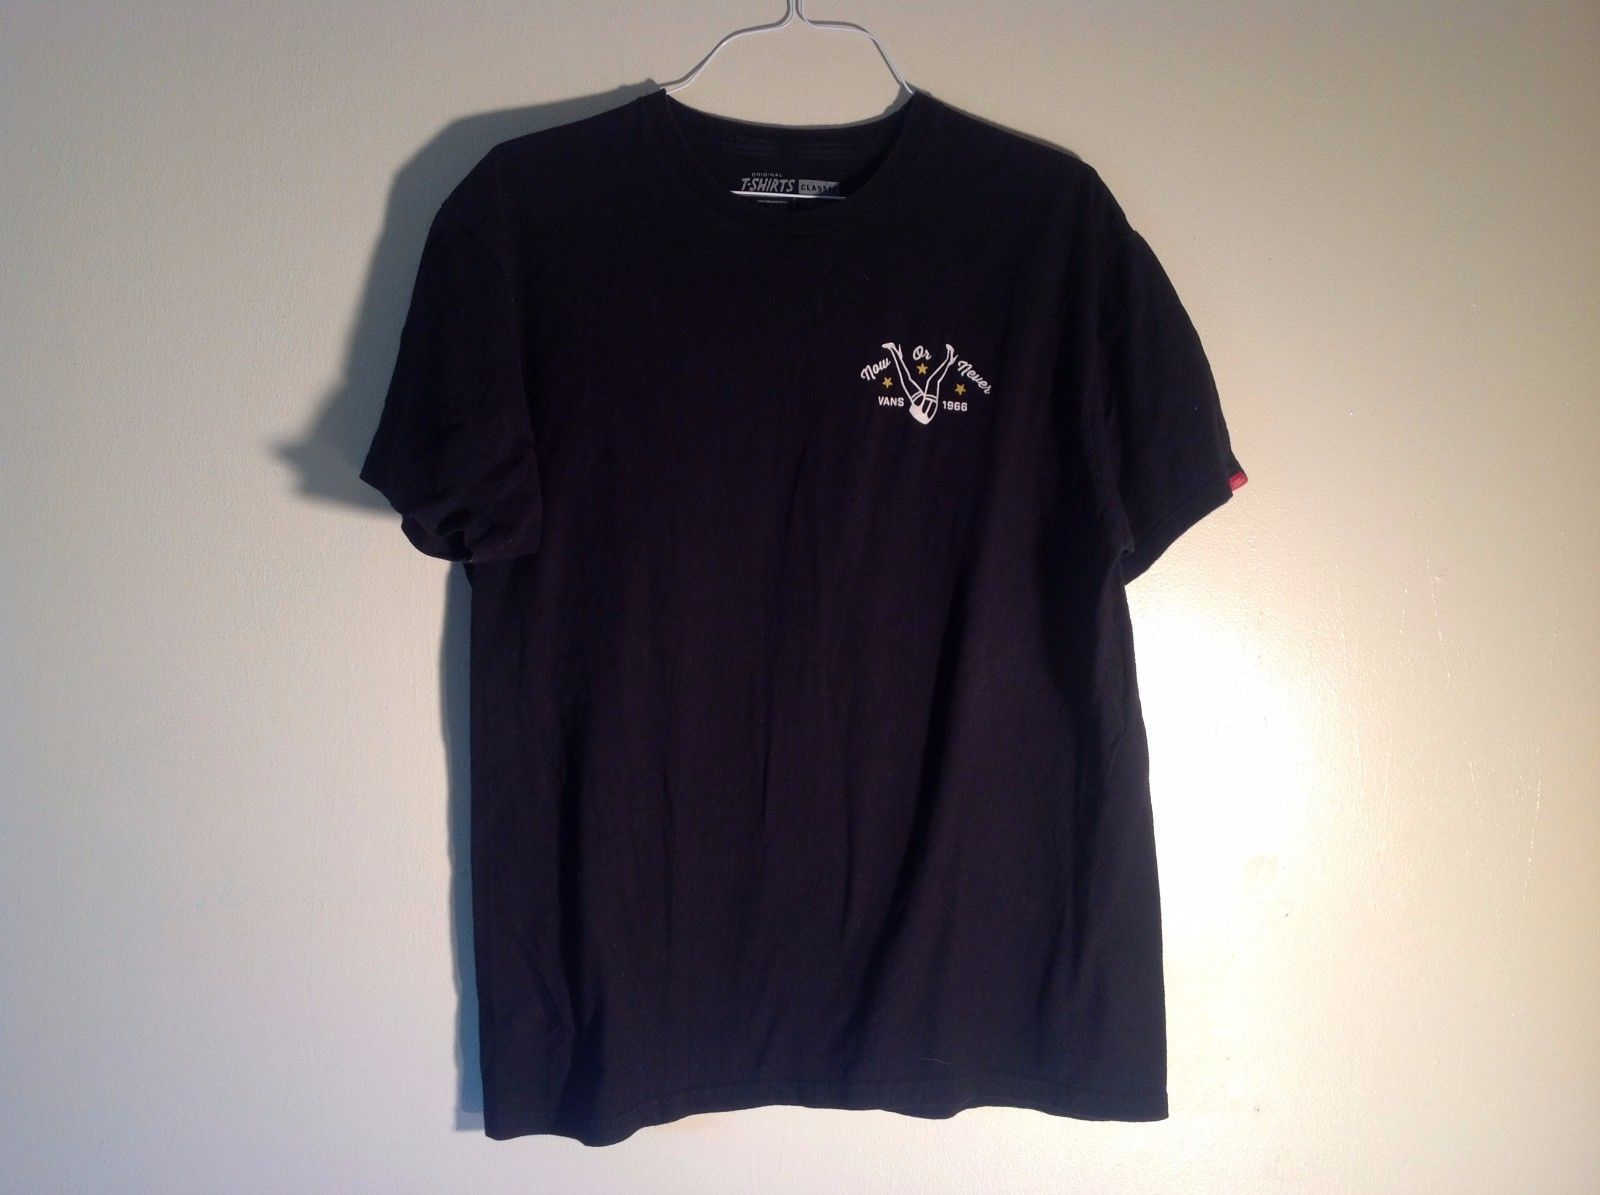 Origina Short Sleeve T-Shirt By Vans